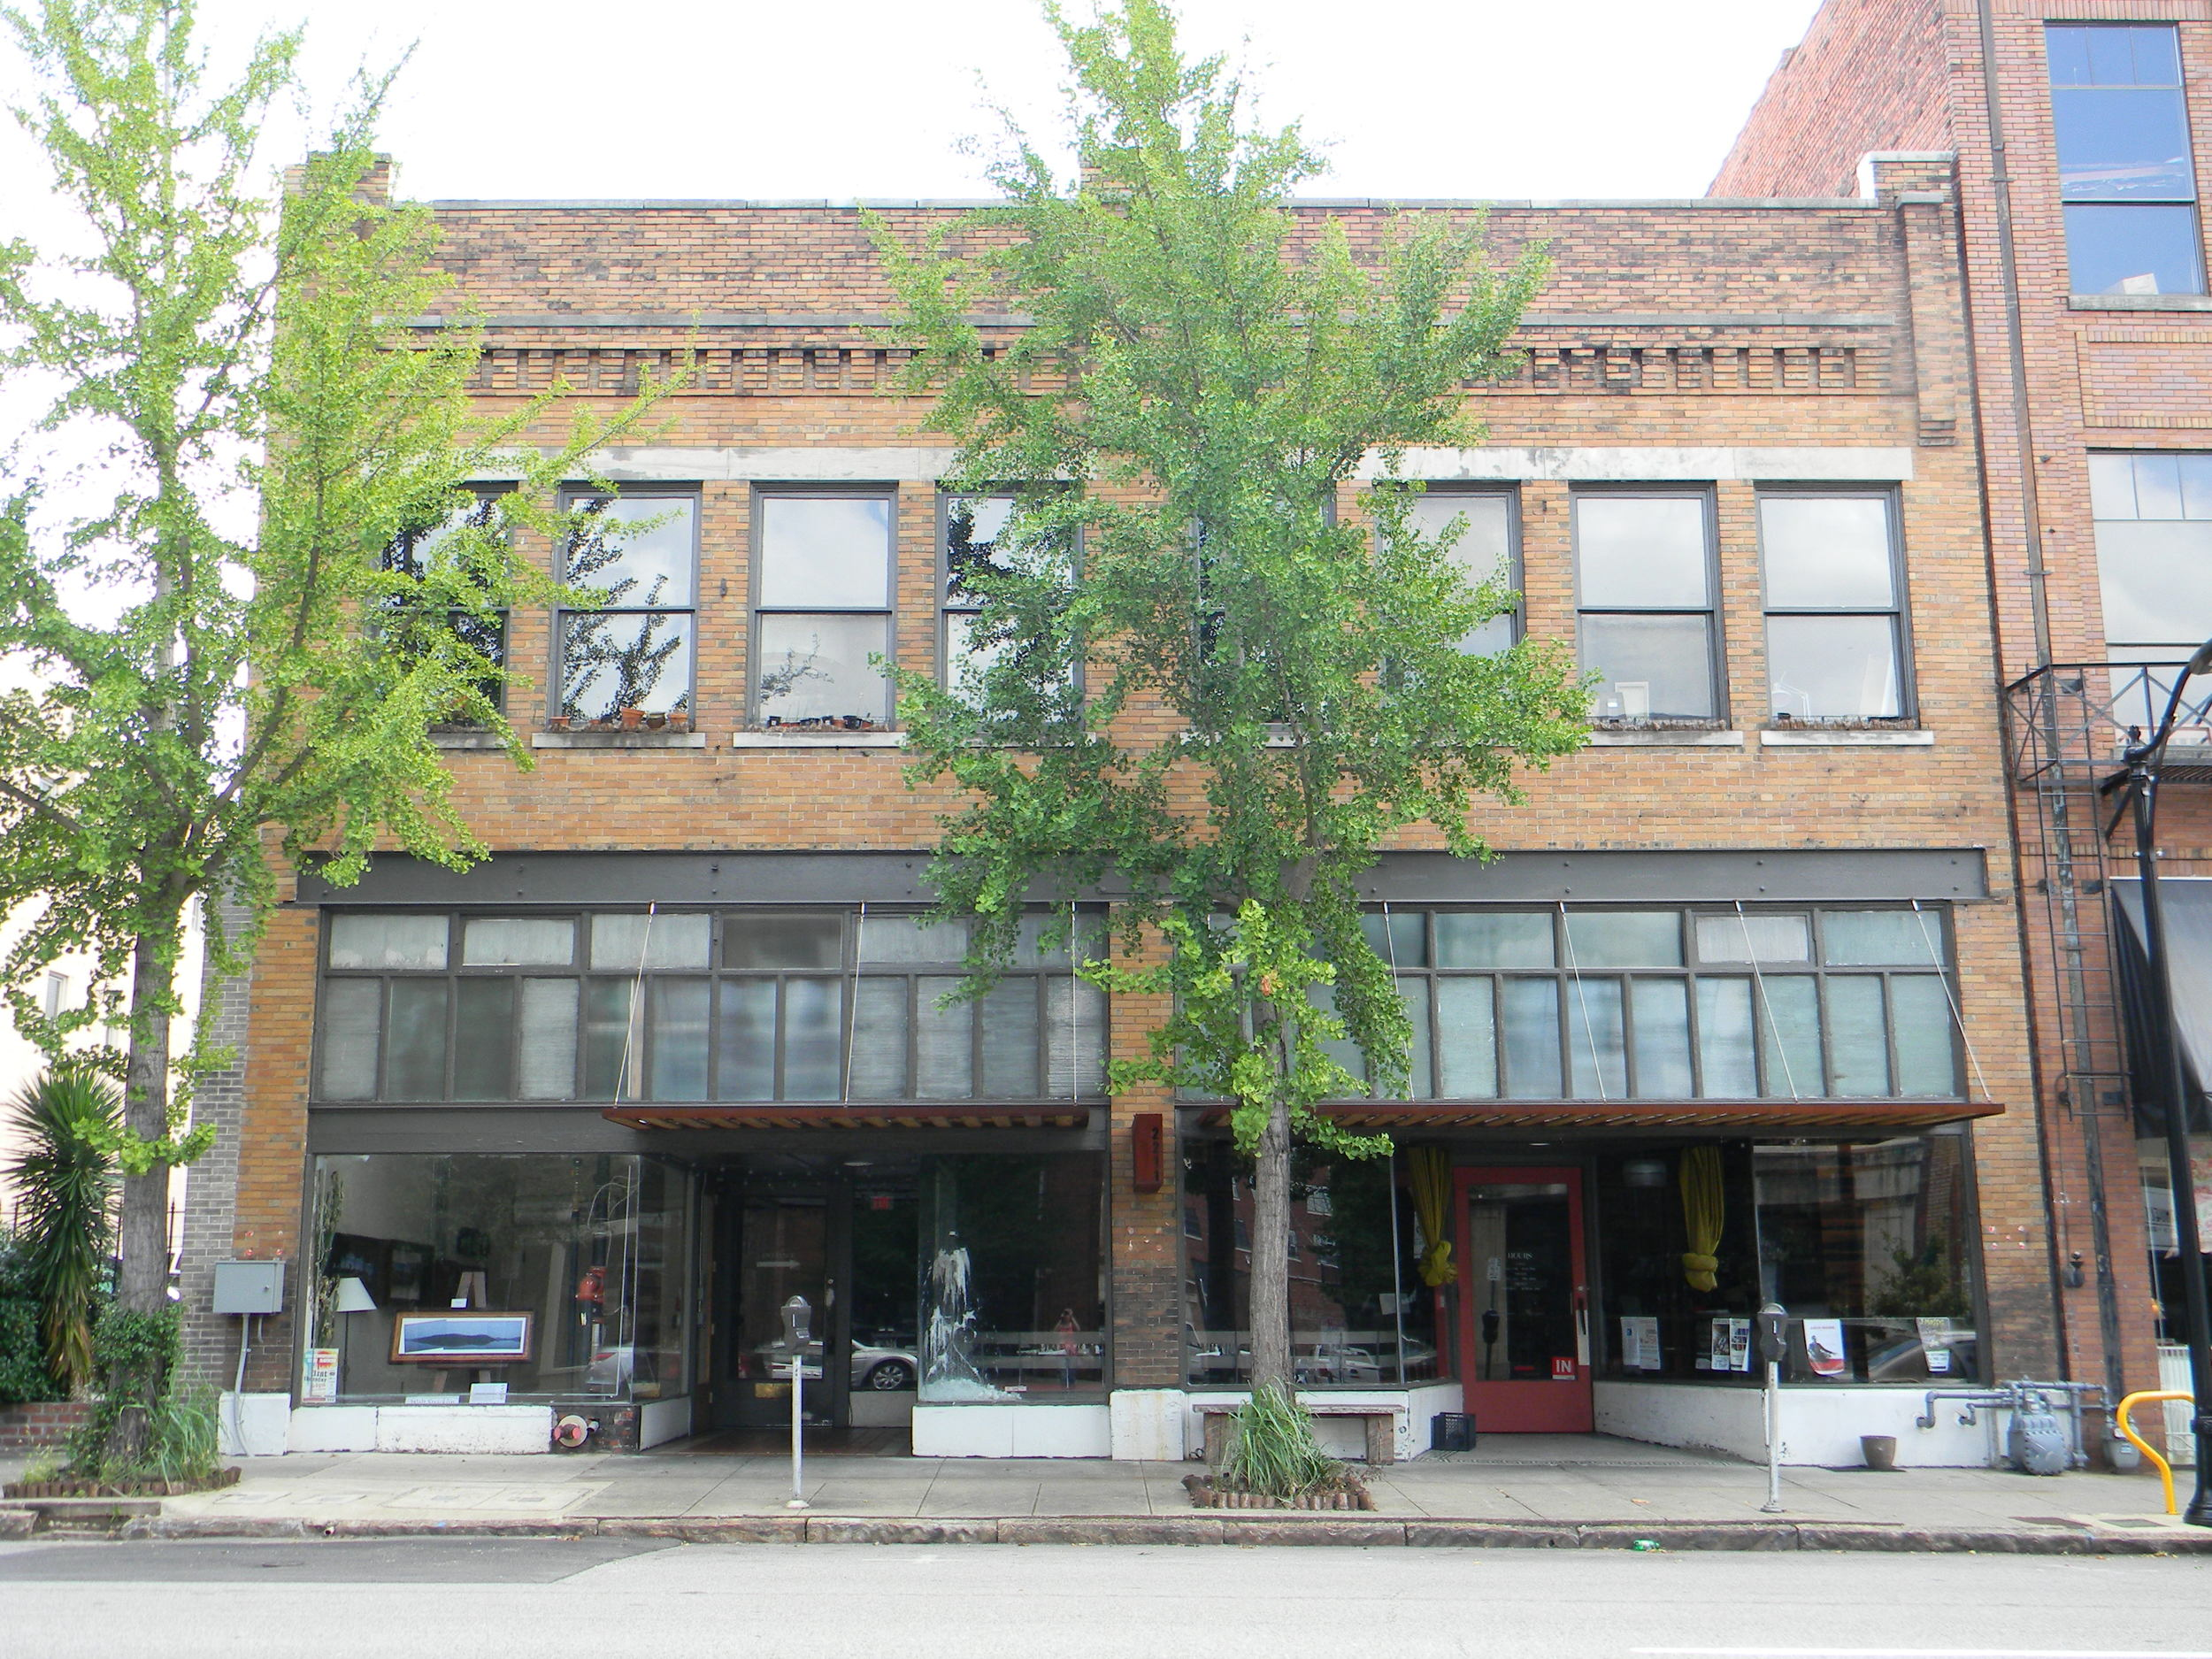 2nd Avenue Storage is located in the historic Counts Brothers Building in Birmingham's Loft District.